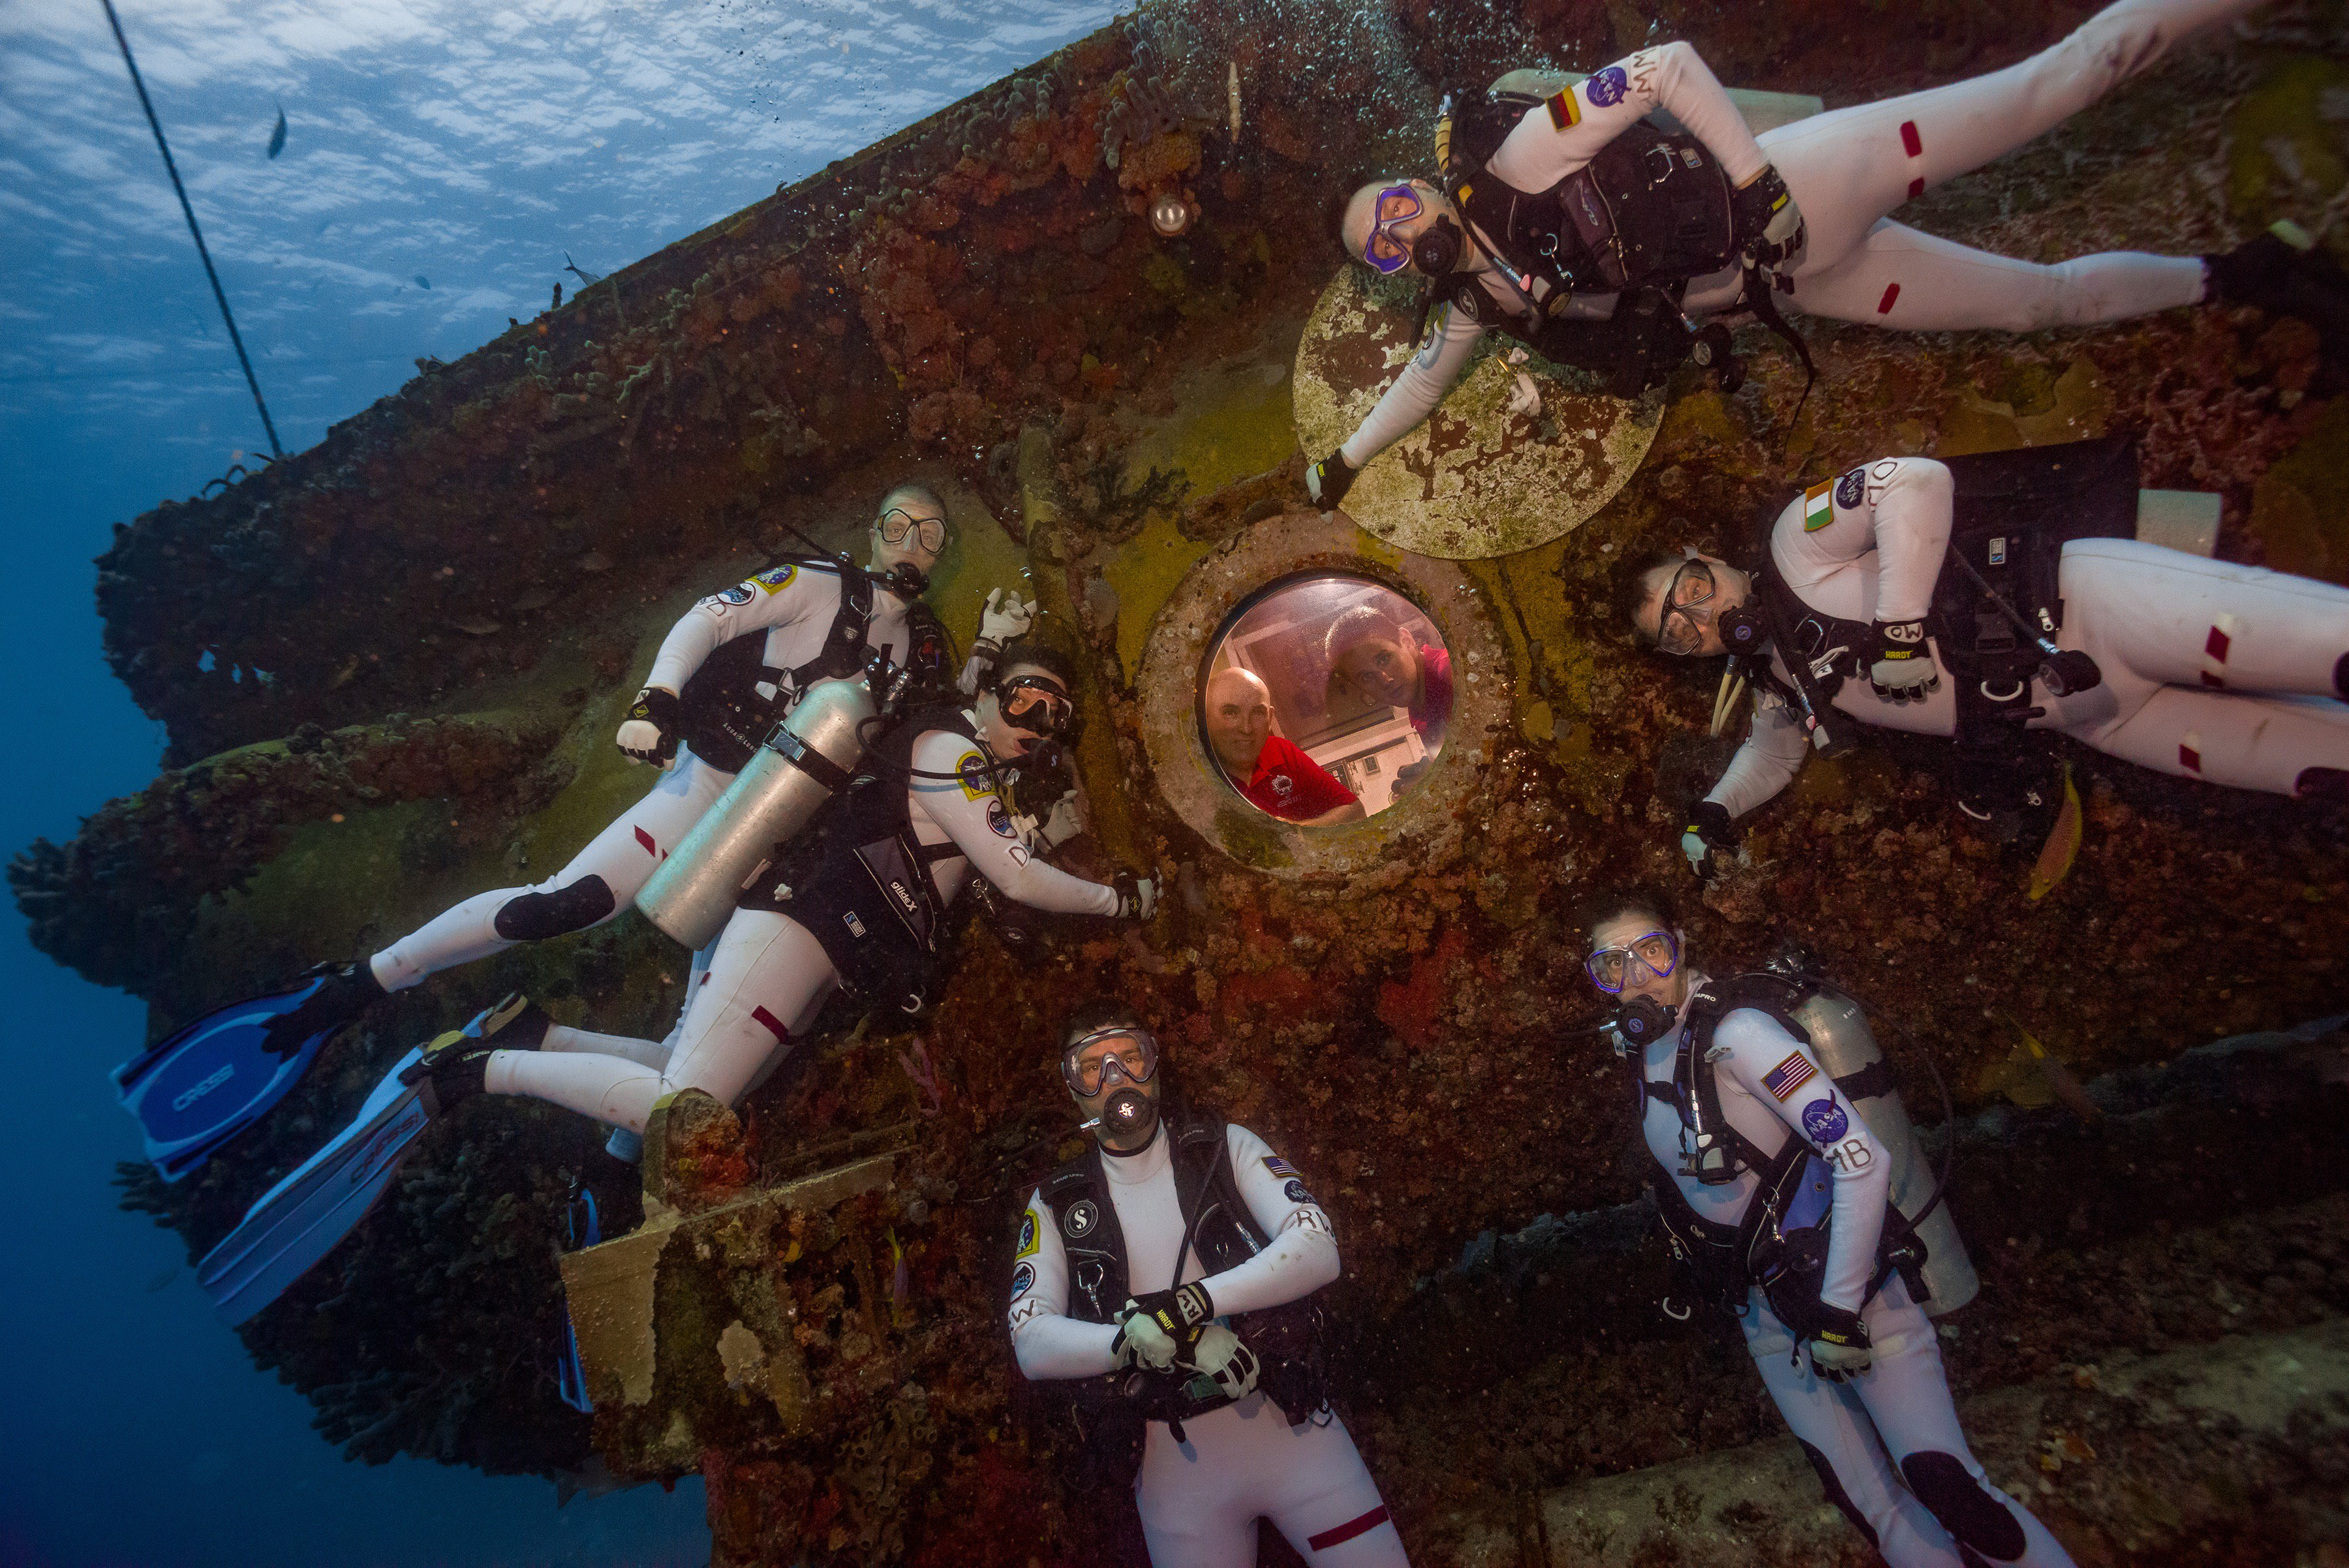 'Aquanauts' Study Space Living from Under the Sea